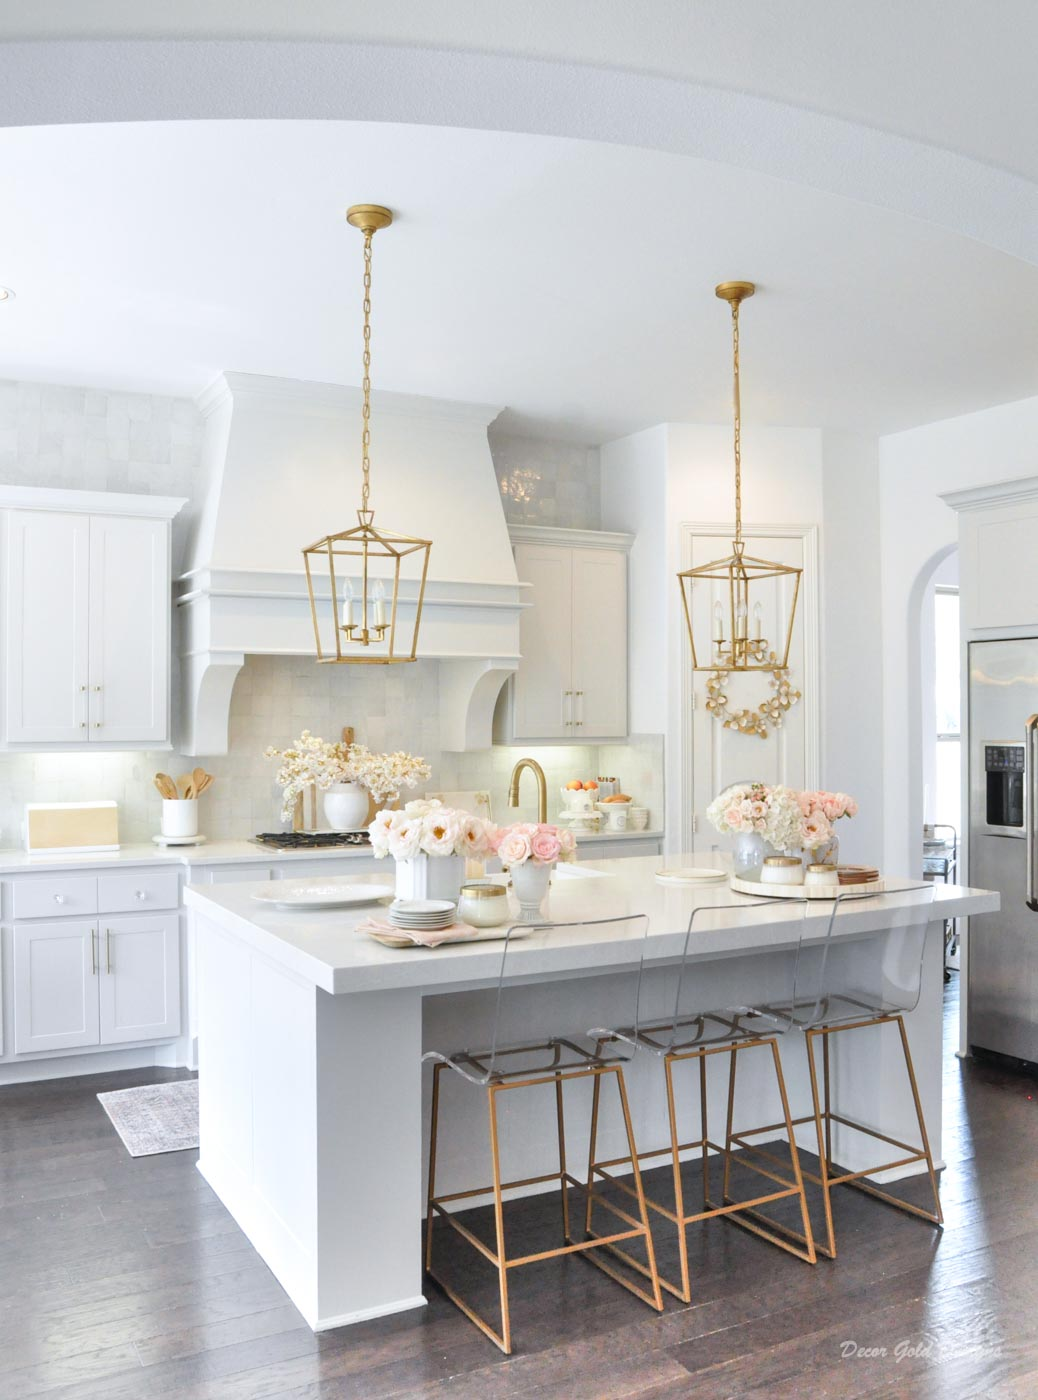 Spring home tour kitchen gold accents beautiful accessories